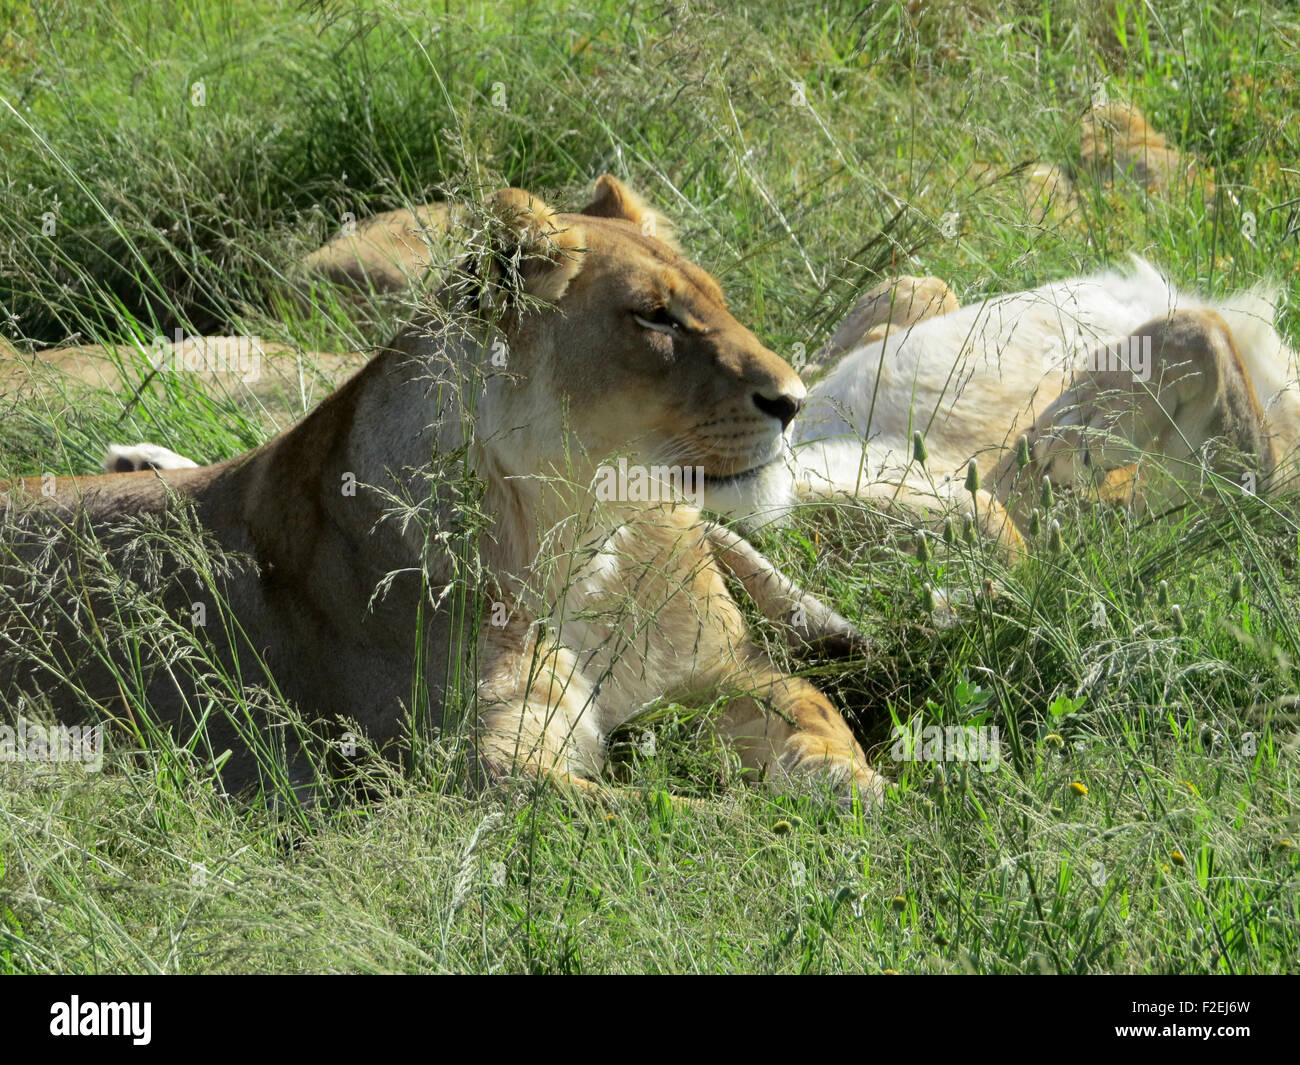 Lions are seen at the Moreson Ranch, a lion breeding ranch in Vrede, South Africa, 10 January 2015. Photo: Sinikka - Stock Image